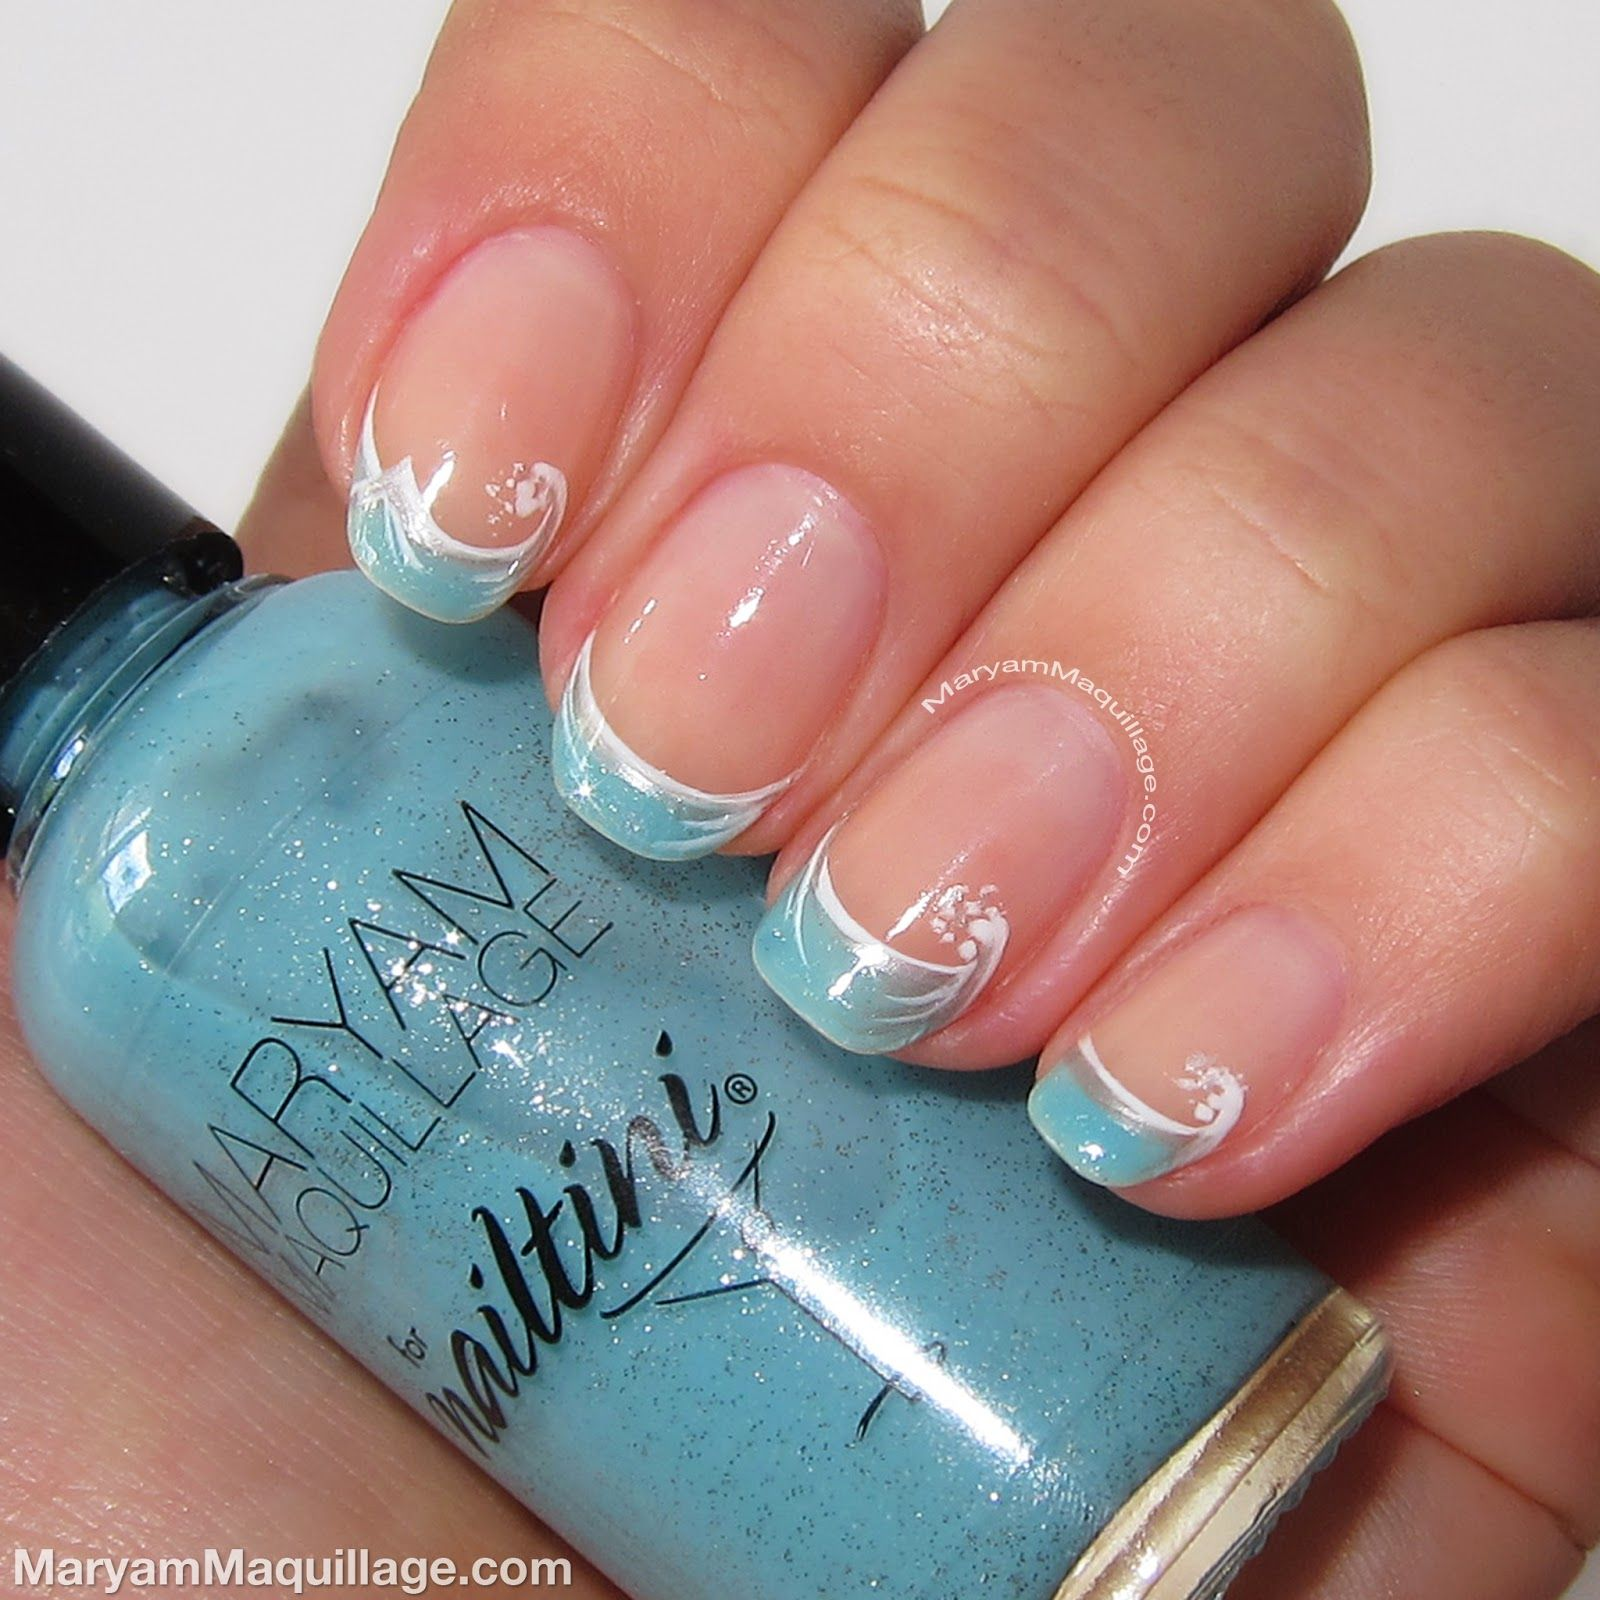 Ocean Waves Artistic French Nail Art Nails Pinterest French